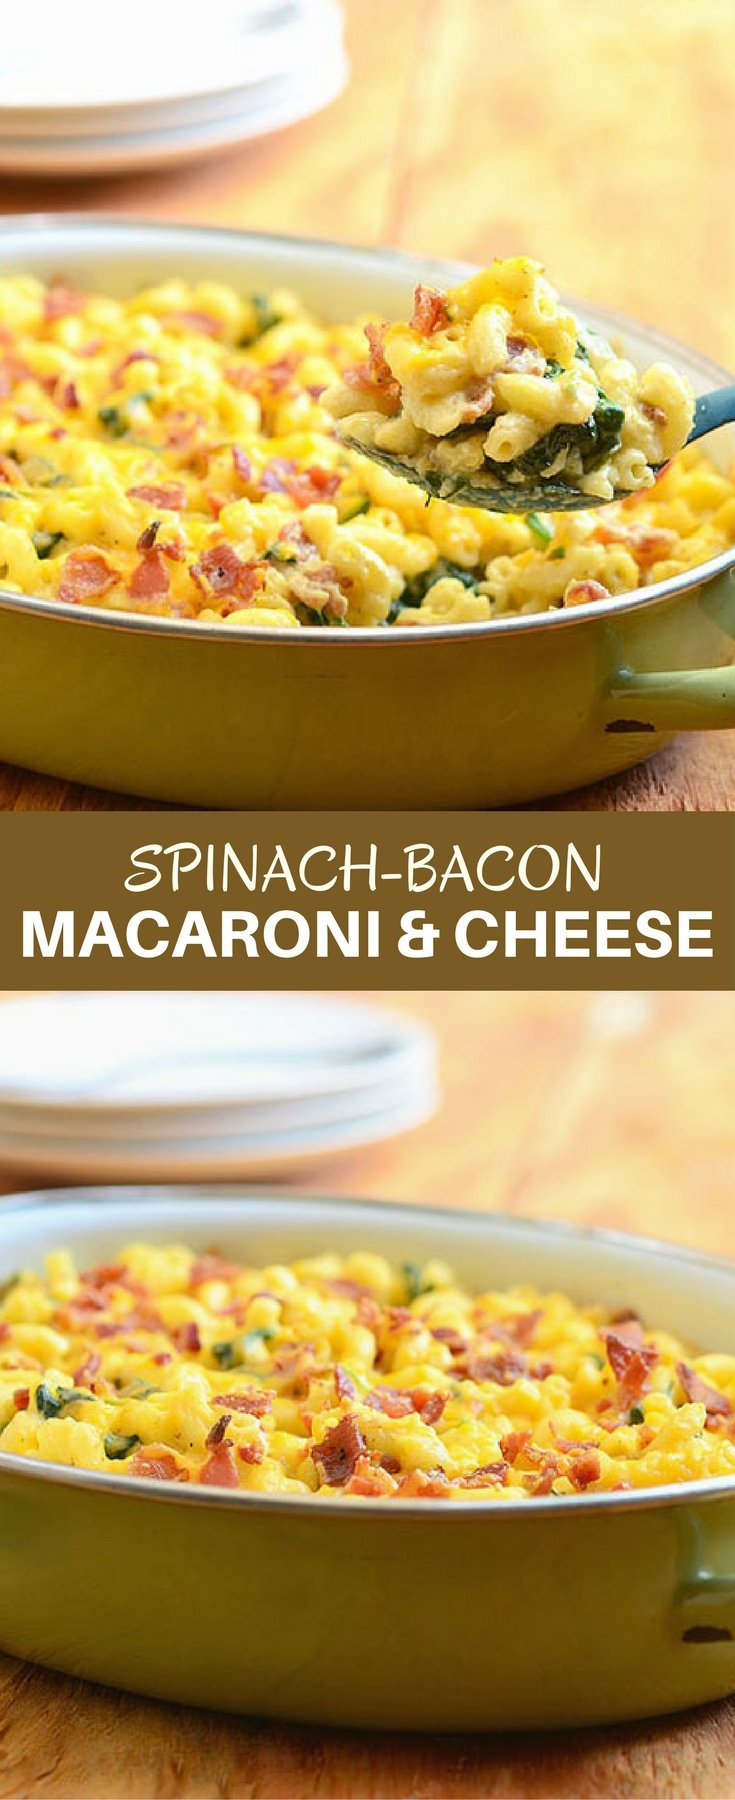 Spinach Bacon Macaroni And Cheese Is A Grown Up Take On Classic Childhood